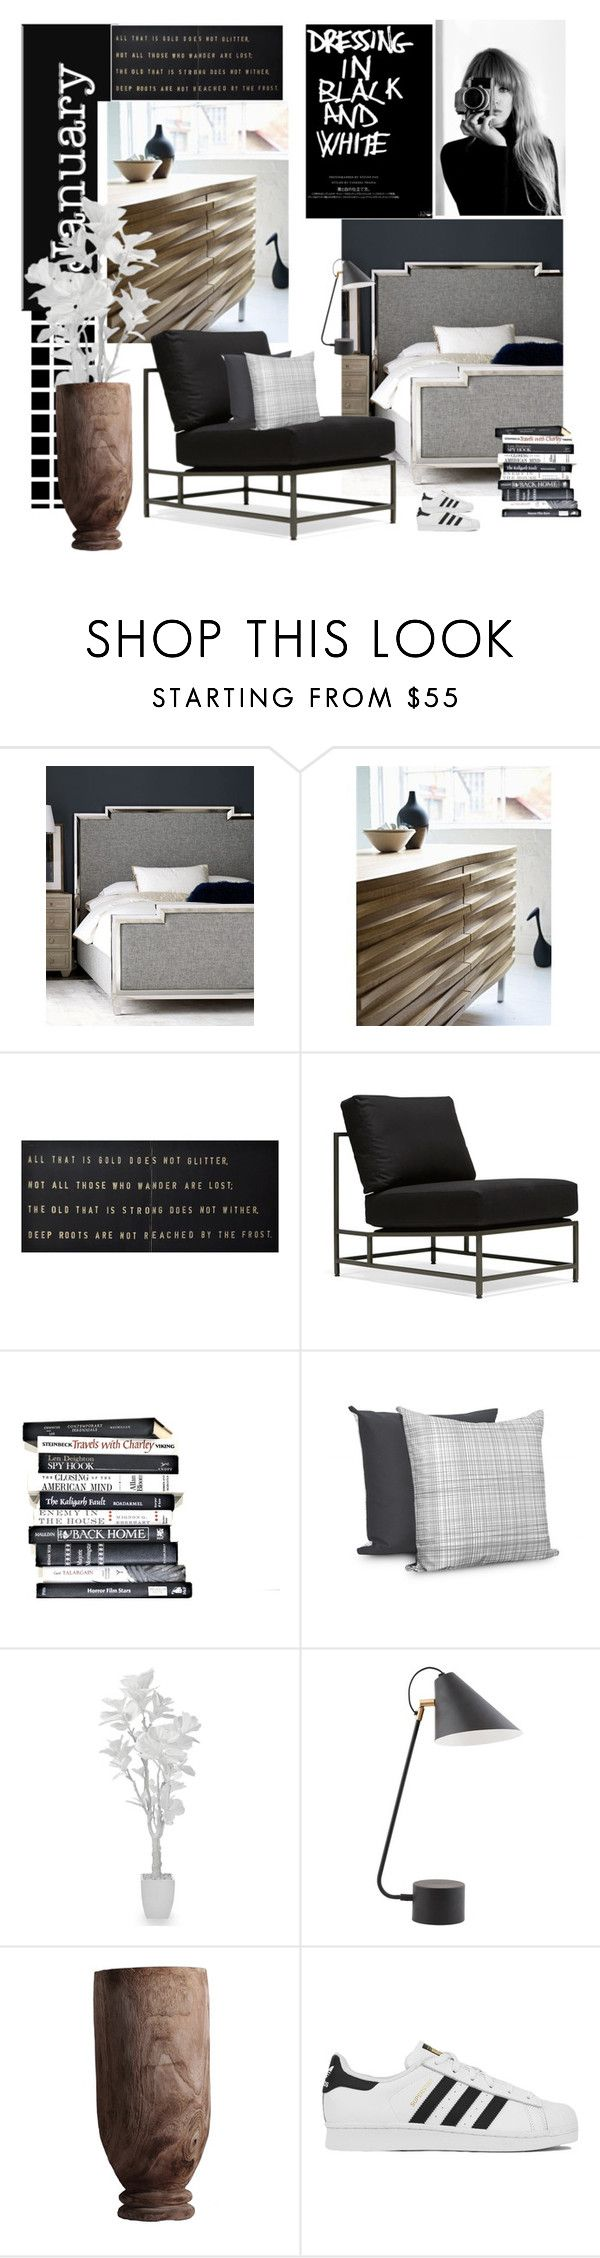 """""""Dressing"""" by vervetandhowler ❤ liked on Polyvore featuring interior, interiors, interior design, home, home decor, interior decorating, Bernhardt, Sugarboo Designs, Twig+Nest and House Doctor"""